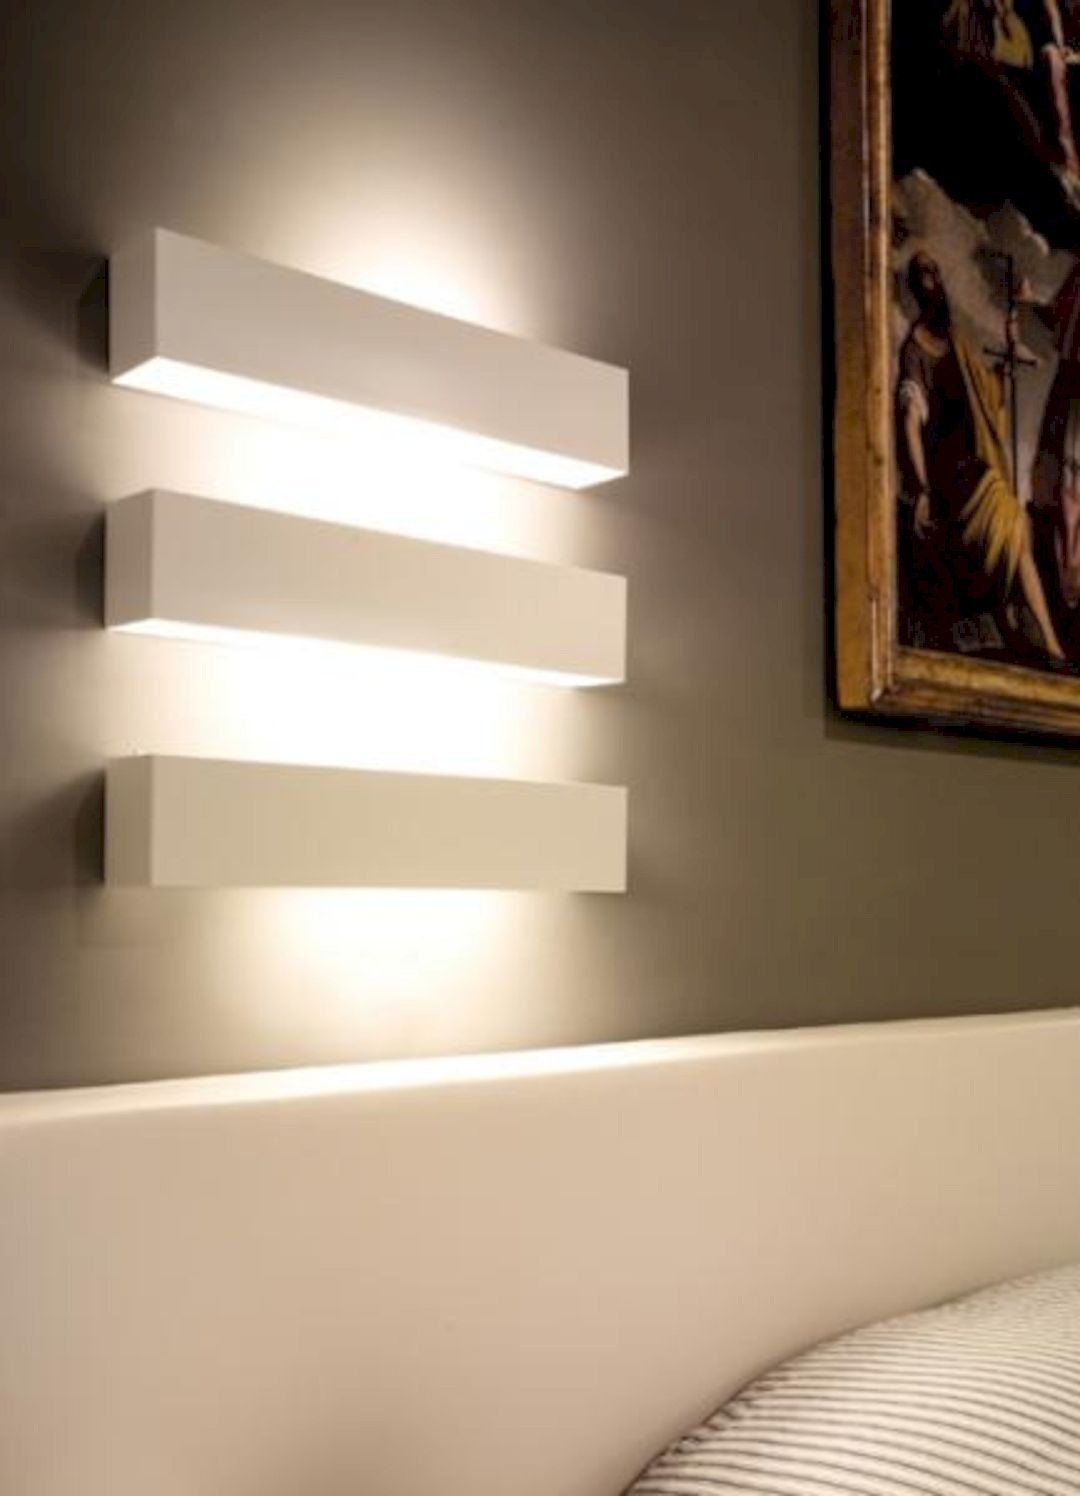 awe inspiring wall lamp design ideas for your room remodel rh pinterest com